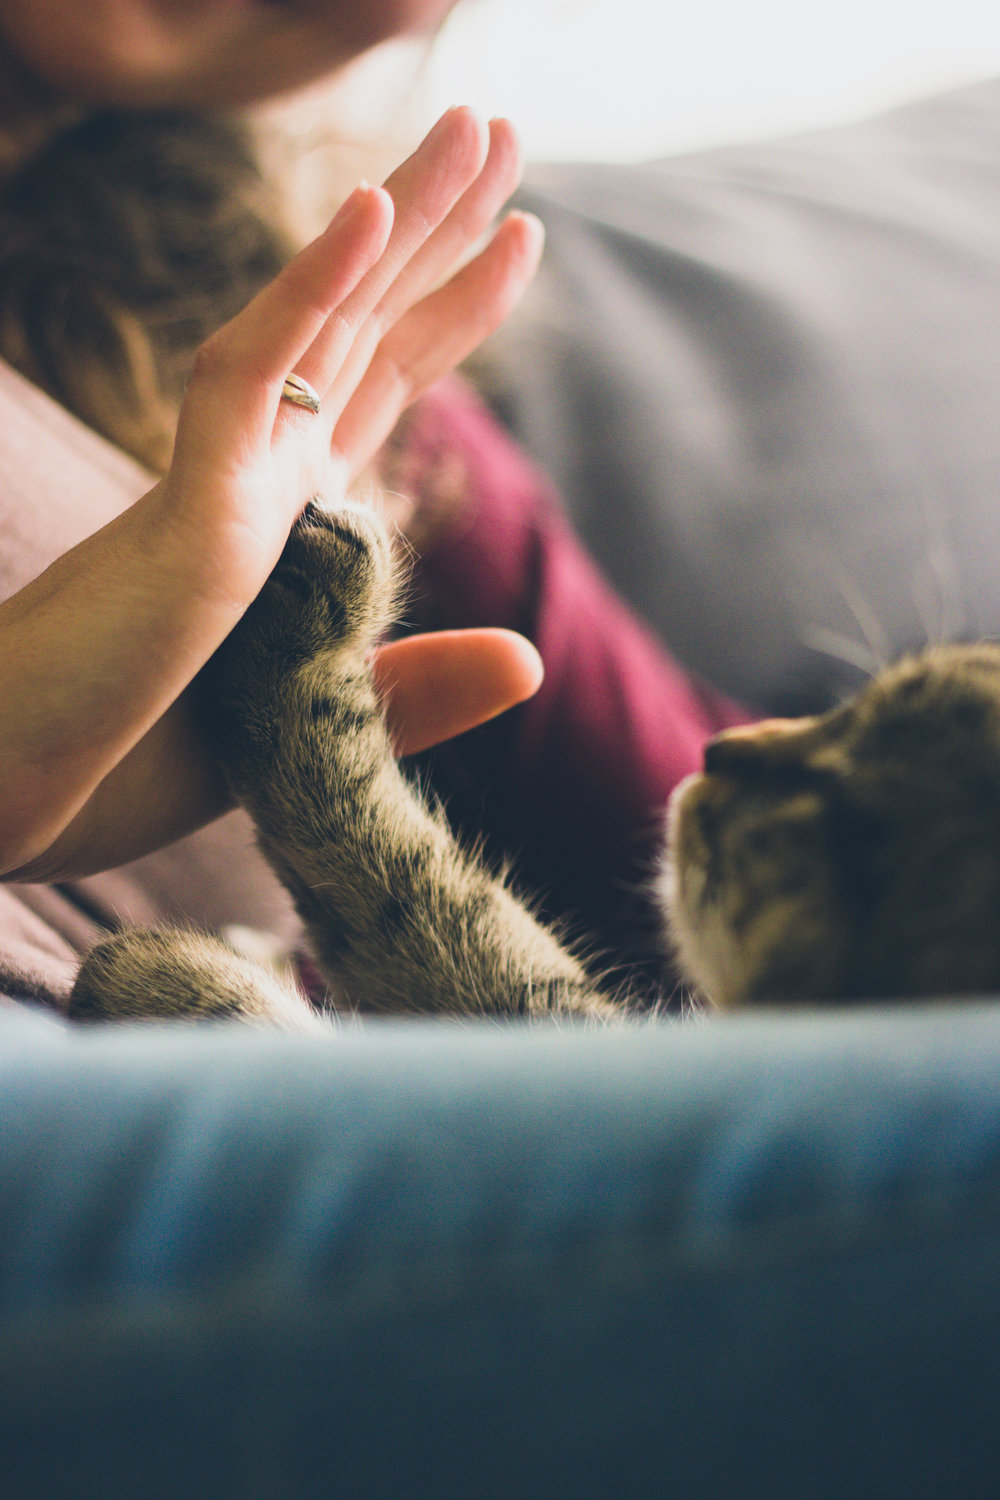 High five! You're connecting to clients exactly where they are right now.